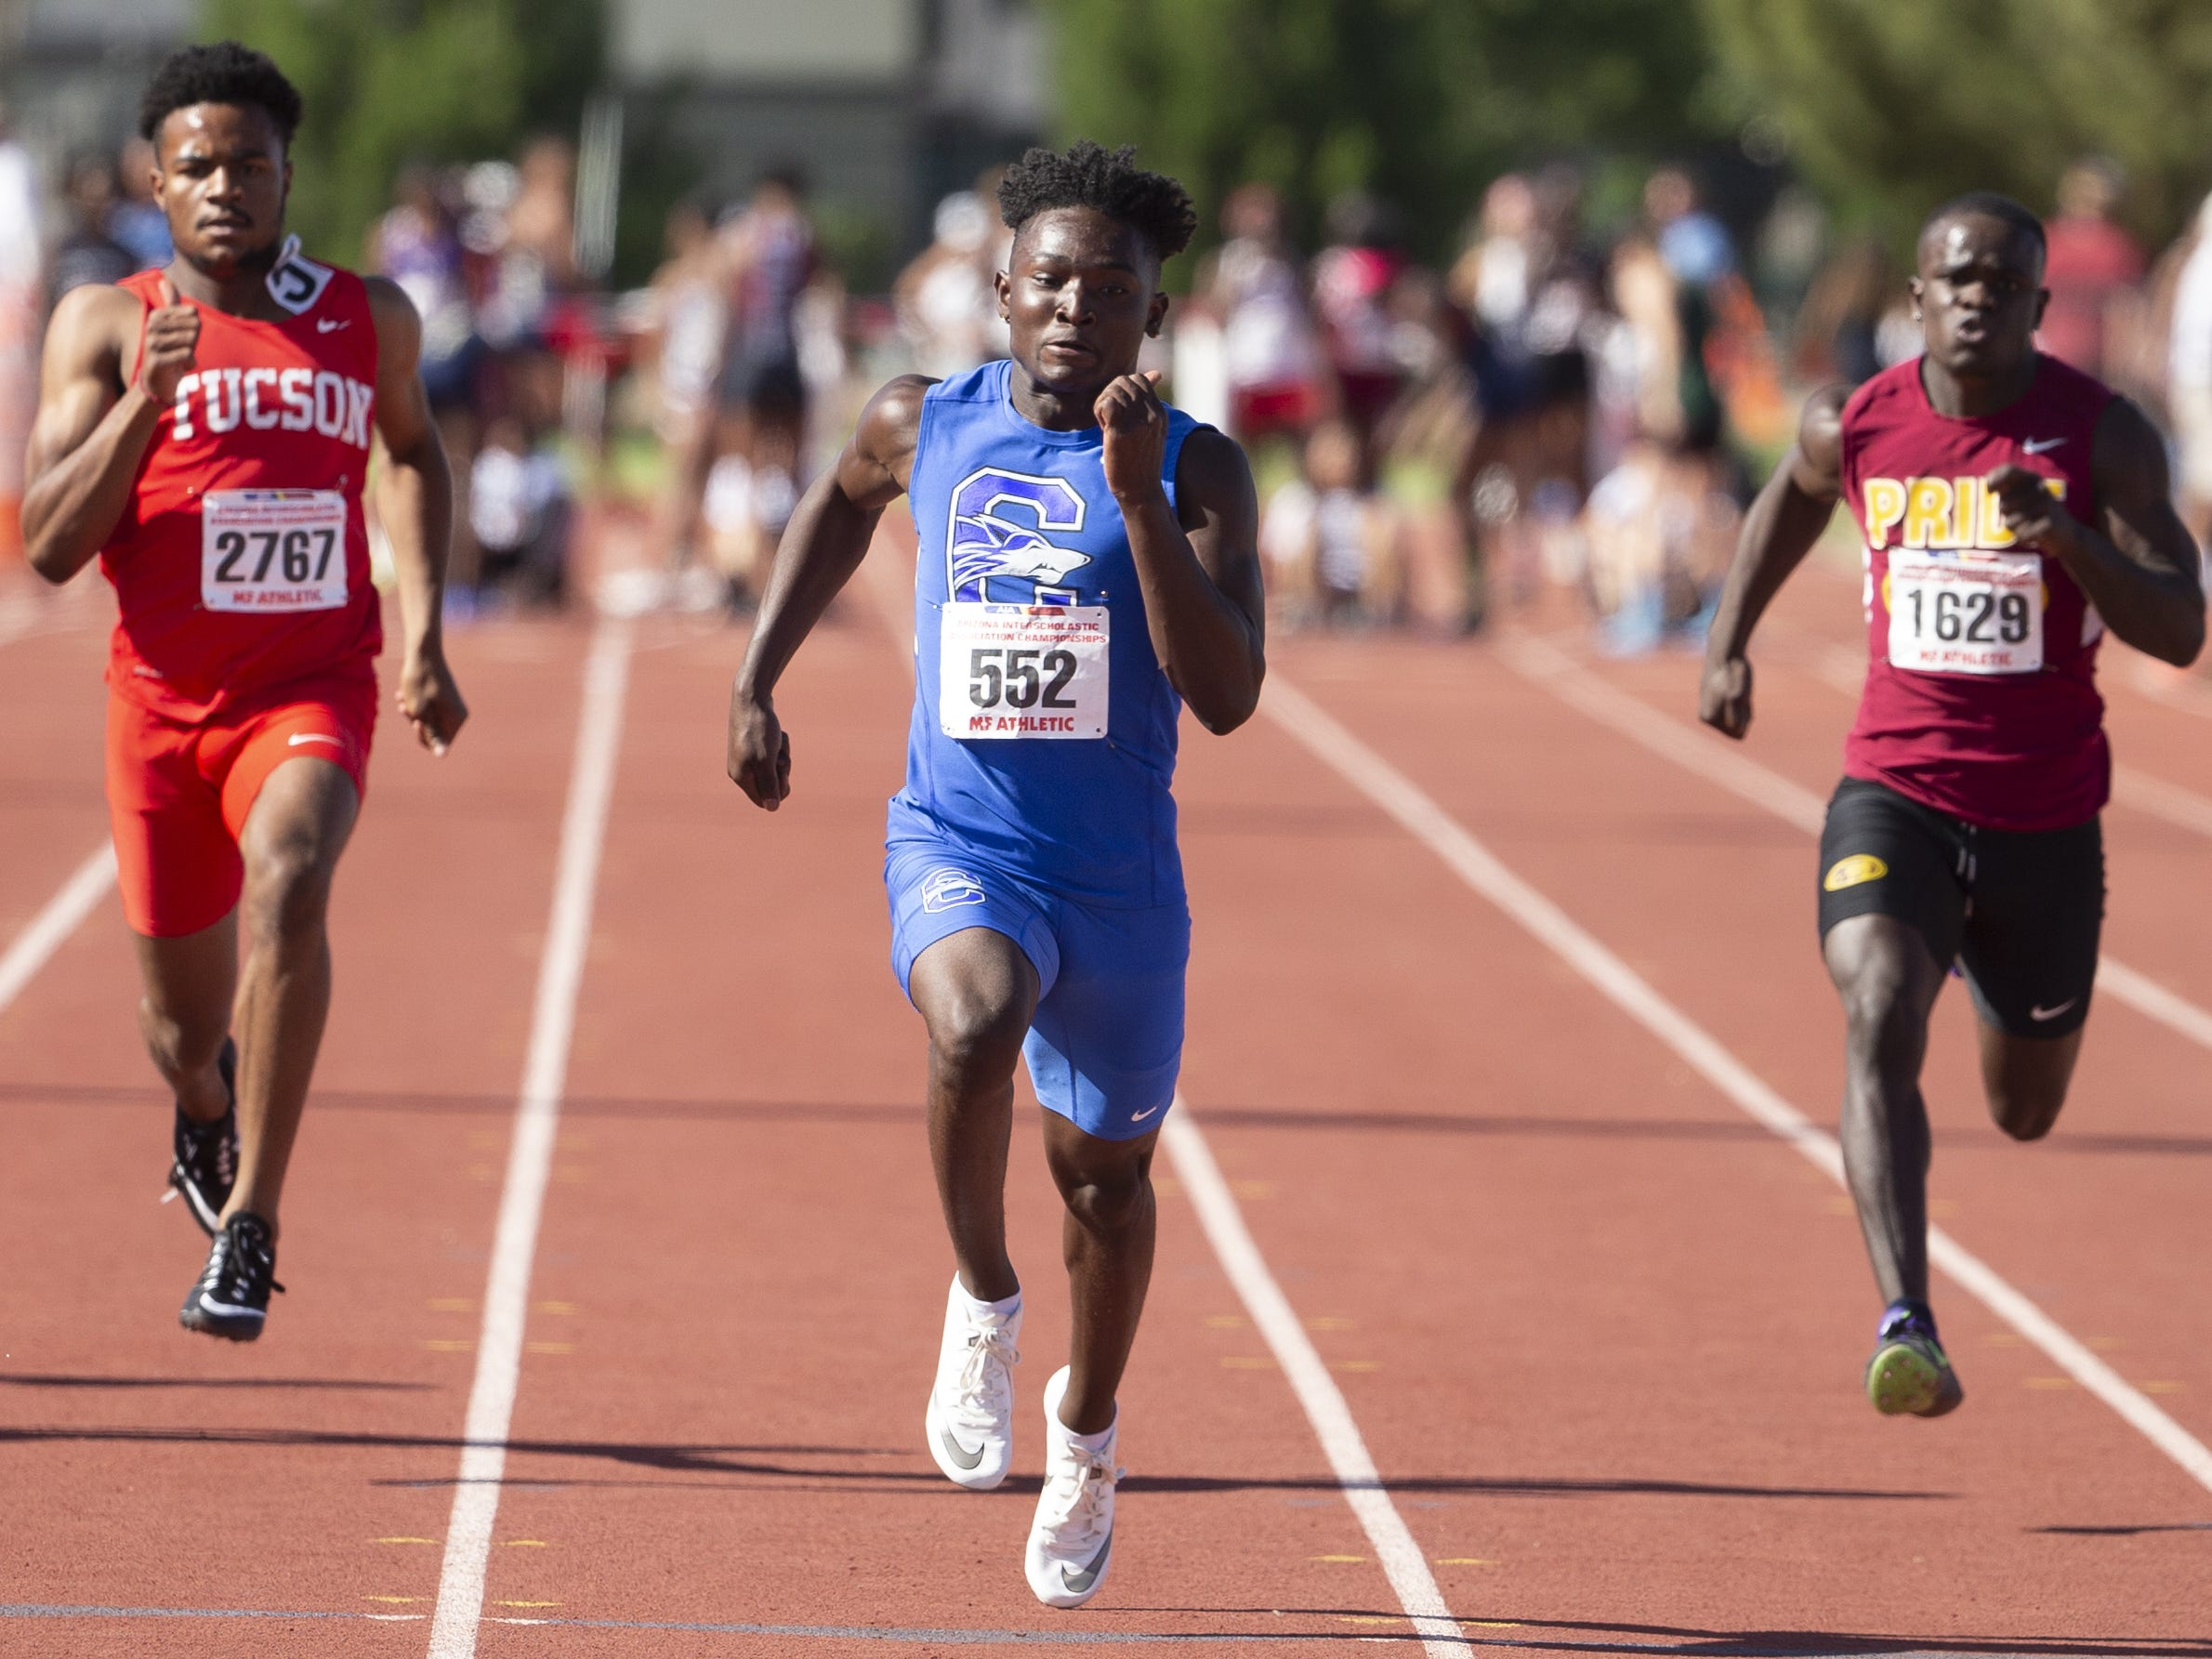 Mountain Pointe's Jathan Washington, Chandler's Quaron Adams, and Tucson's Octavius Thomas compete in the Boys 100 Meter dash Div. I during the state track and field meet at Mesa Community college on May 1, 2019.